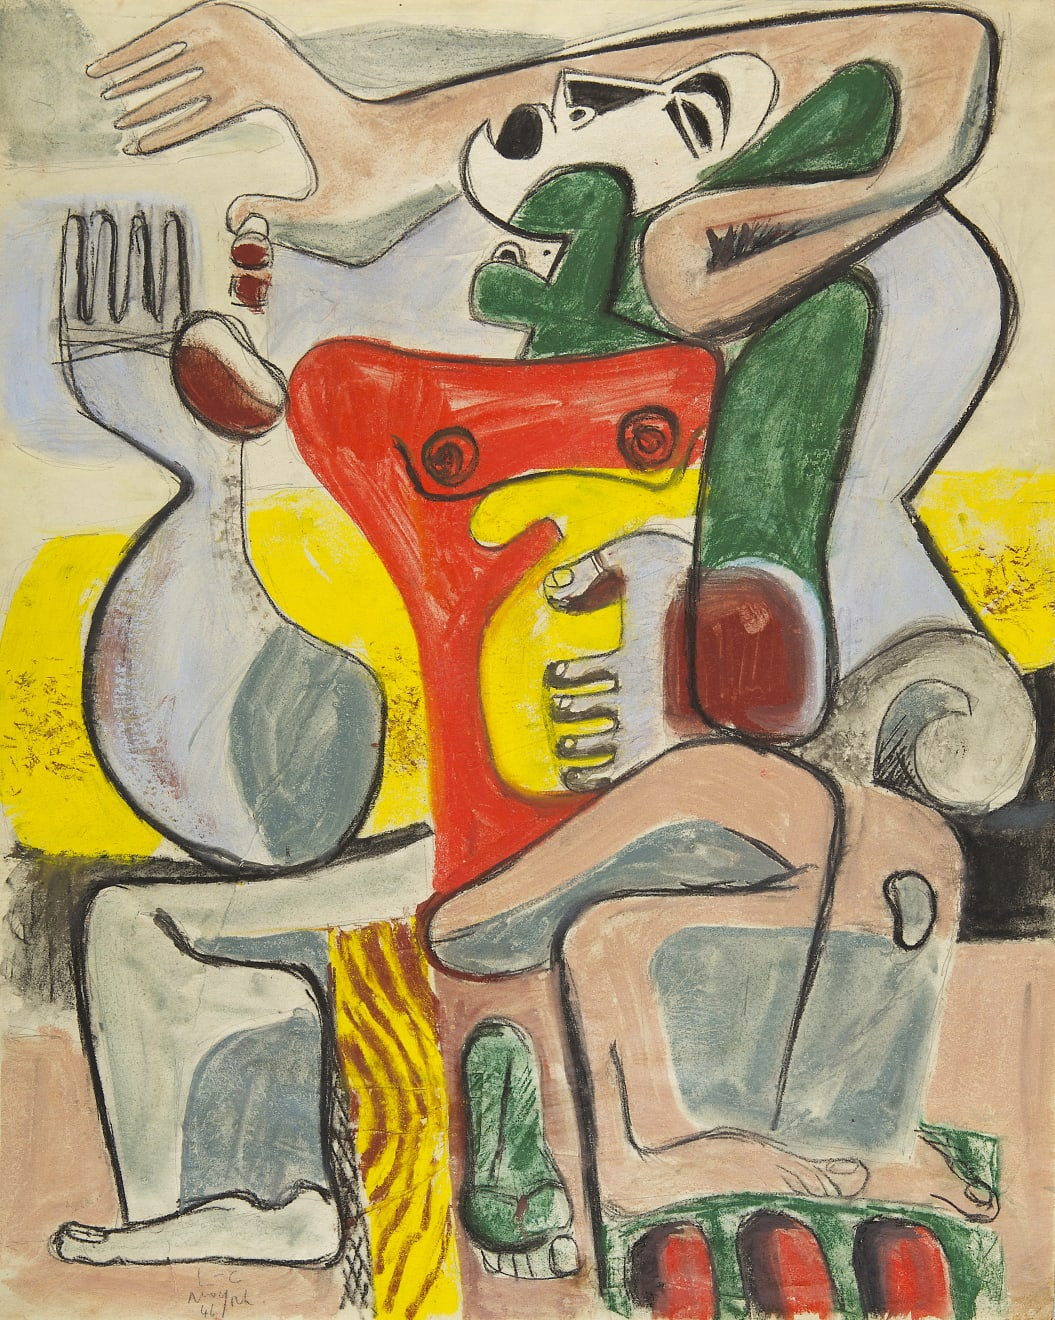 Le Corbusier (1887-1965), The Embrace, 1946, Washed pastel and pencil on fine vellum paper, 56 x 45 cm